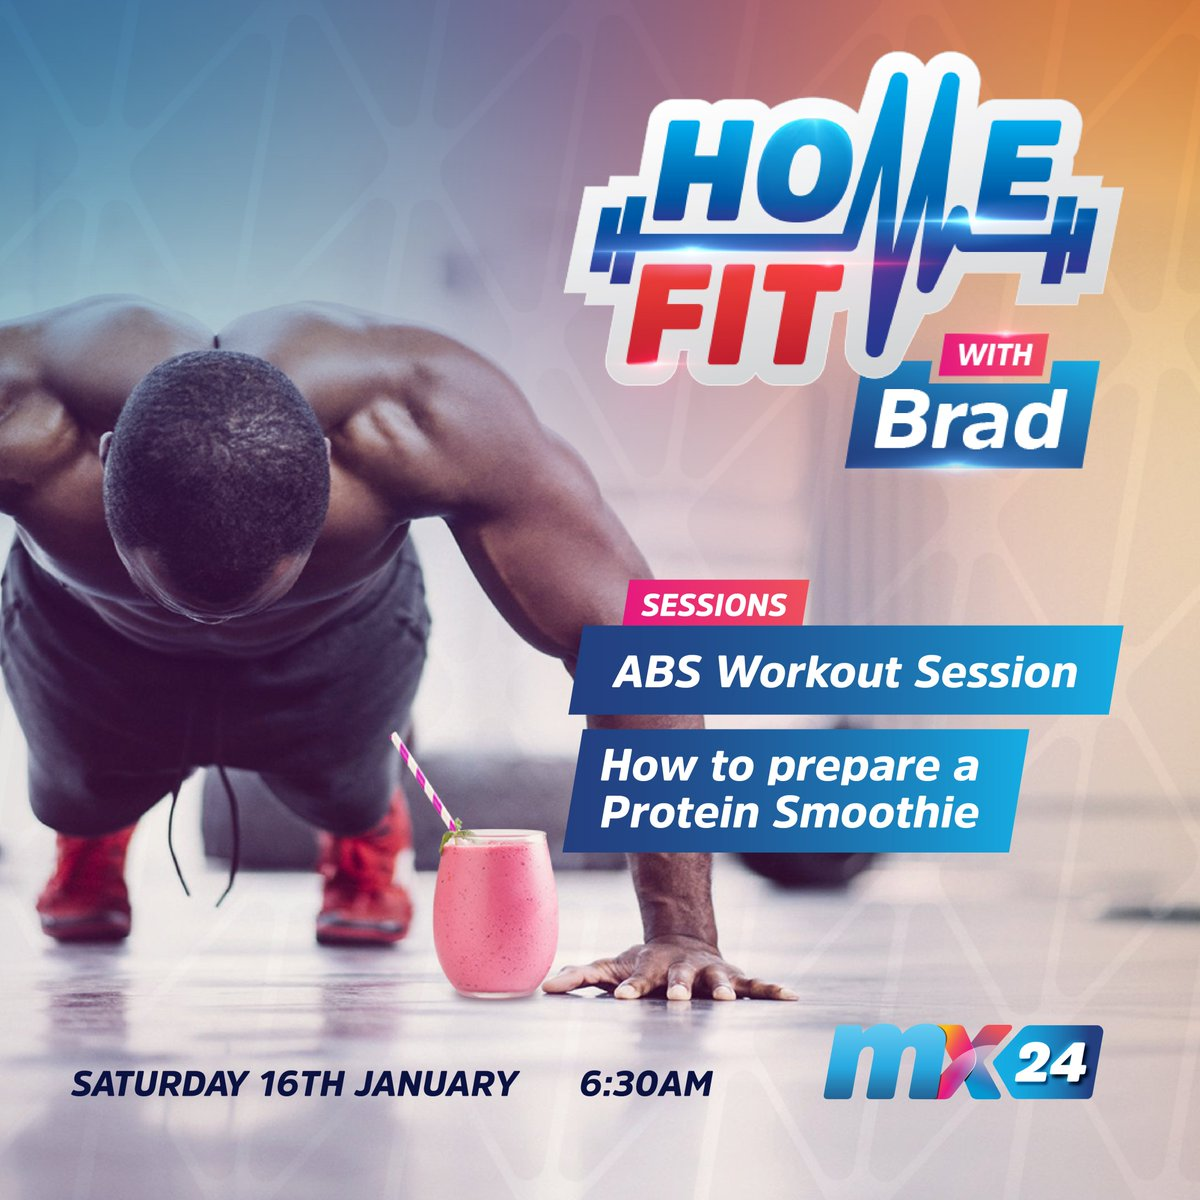 Join Brad on #HomeFit tomorrow Saturday at 6:30am for all your fitness and health needs. We will work on the Abs and also learn how to prepare a protein smoothie. LET'S GET FIT TOGETHER.  #HomeFit #workout #healthy #fitness #mx24gh #funfearlessfactual